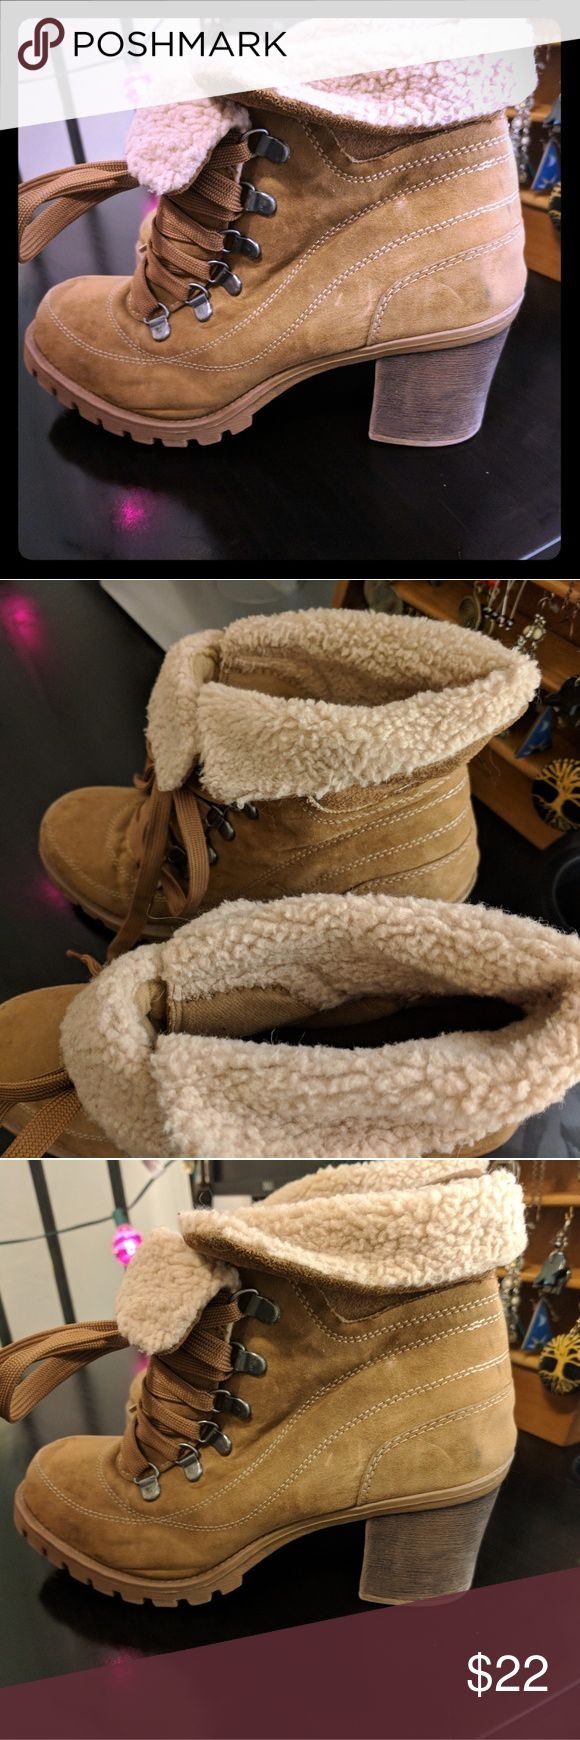 Jellypop Heeled Fur-lined Boot 🏔️ Tan Explorer Boots, With Fuzzy Foldovers, Snow Tread, Metal Lace Clips And Extra Long Laces. So cute and comfy! I love them, but moved to a warmer location 🐺   Great condition with s few small marks on toe (in photo)  Jellypop Heeled Fur-lined Boot 🏔️ Jellypop Shoes Heeled Boots